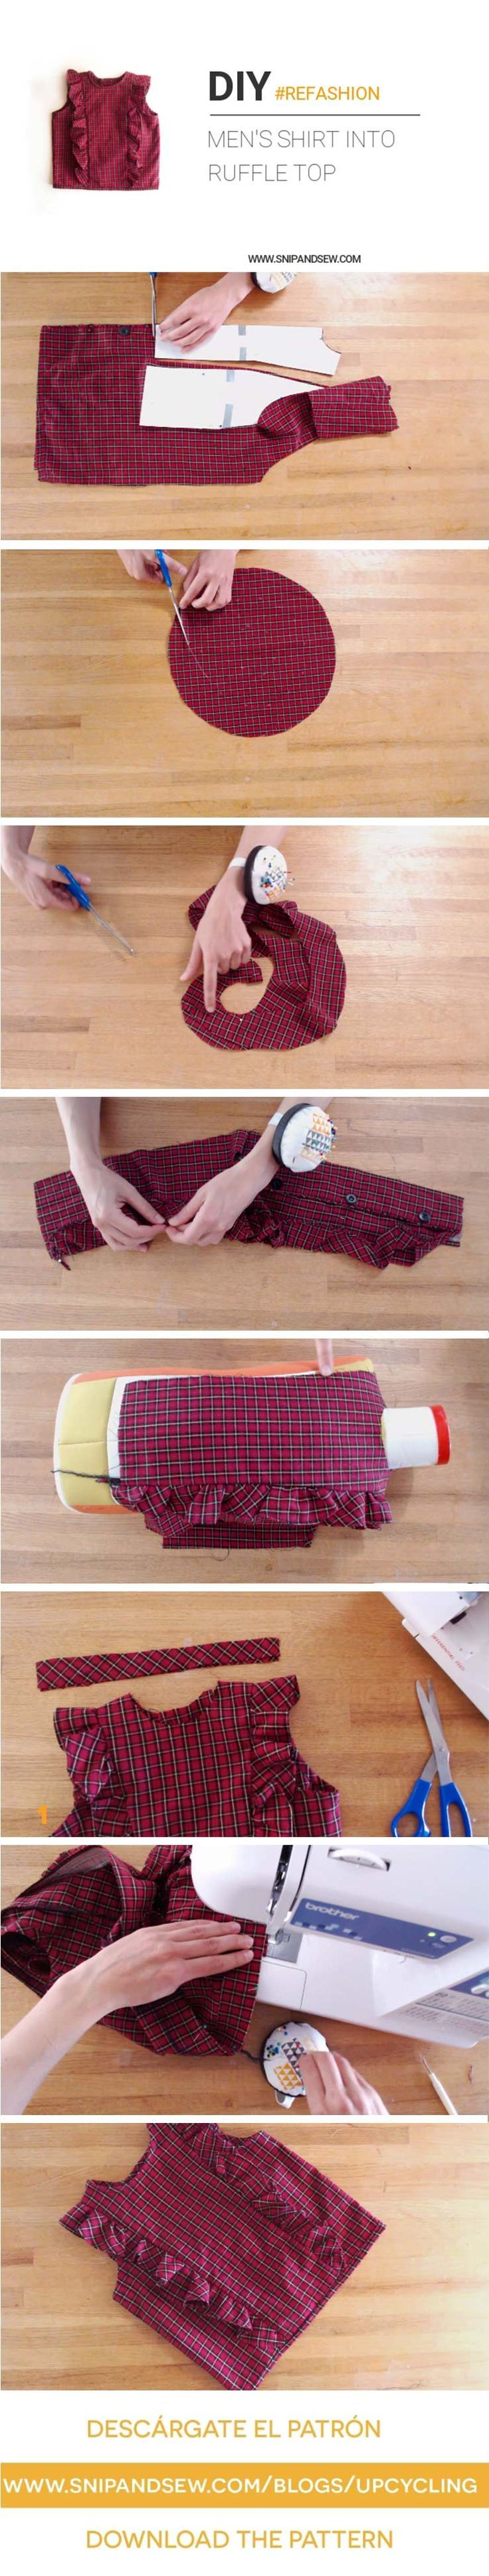 DIY/ UPCYCLE - Refashioning an old shirt into a Flounce Top (Video Tutorial) Free pattern available (Size 2-7)